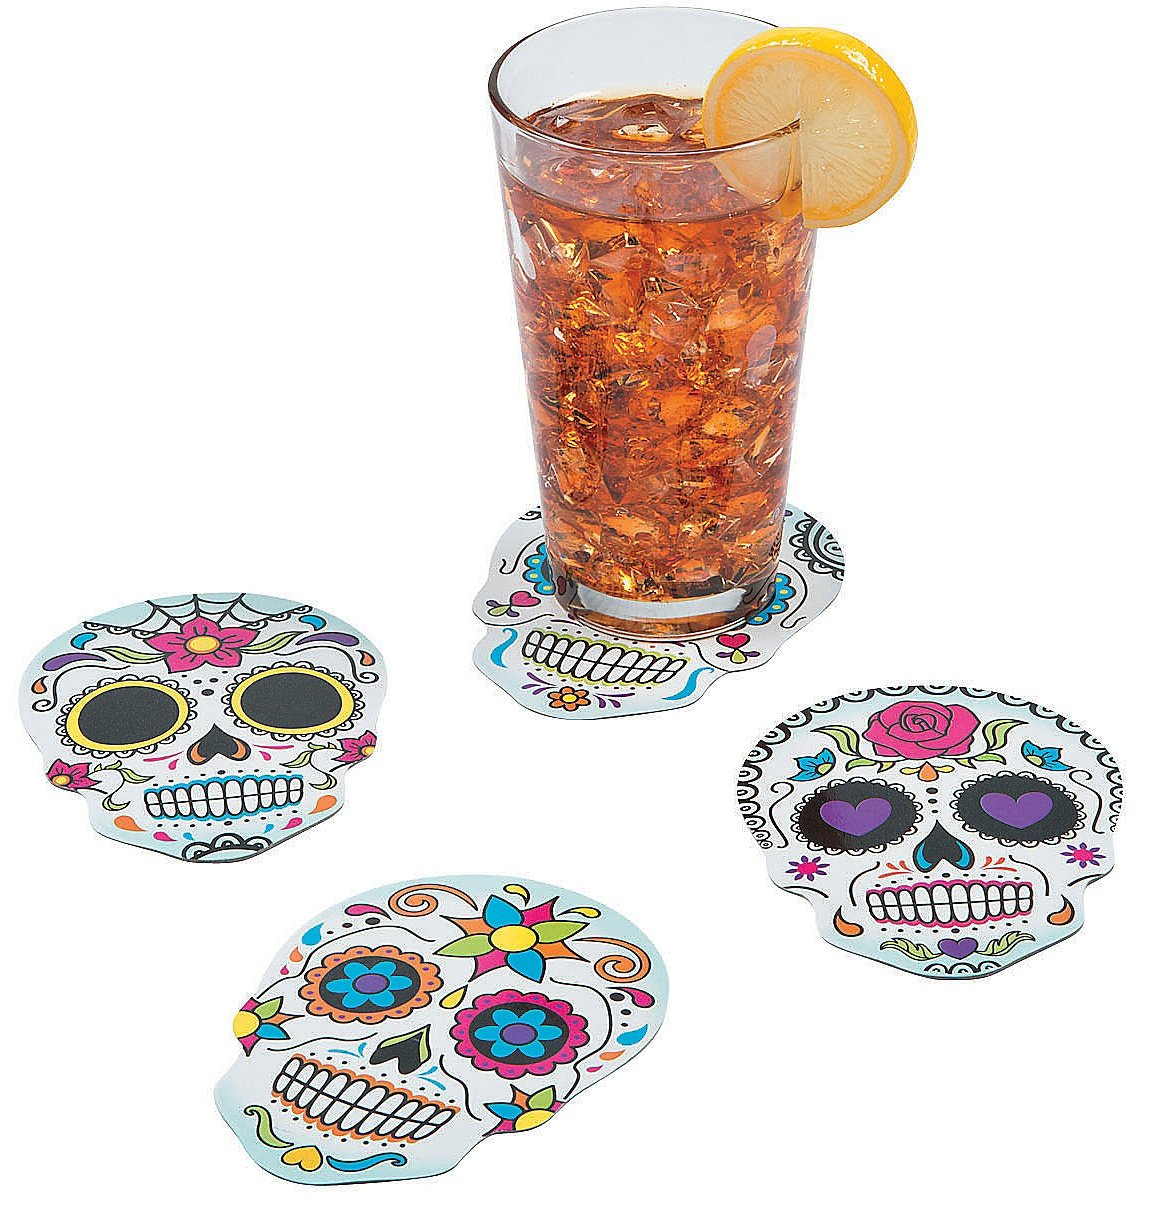 12 ~ Day of the Dead / Candy Skull Cardboard Coasters / Wall Decorations ~ 5